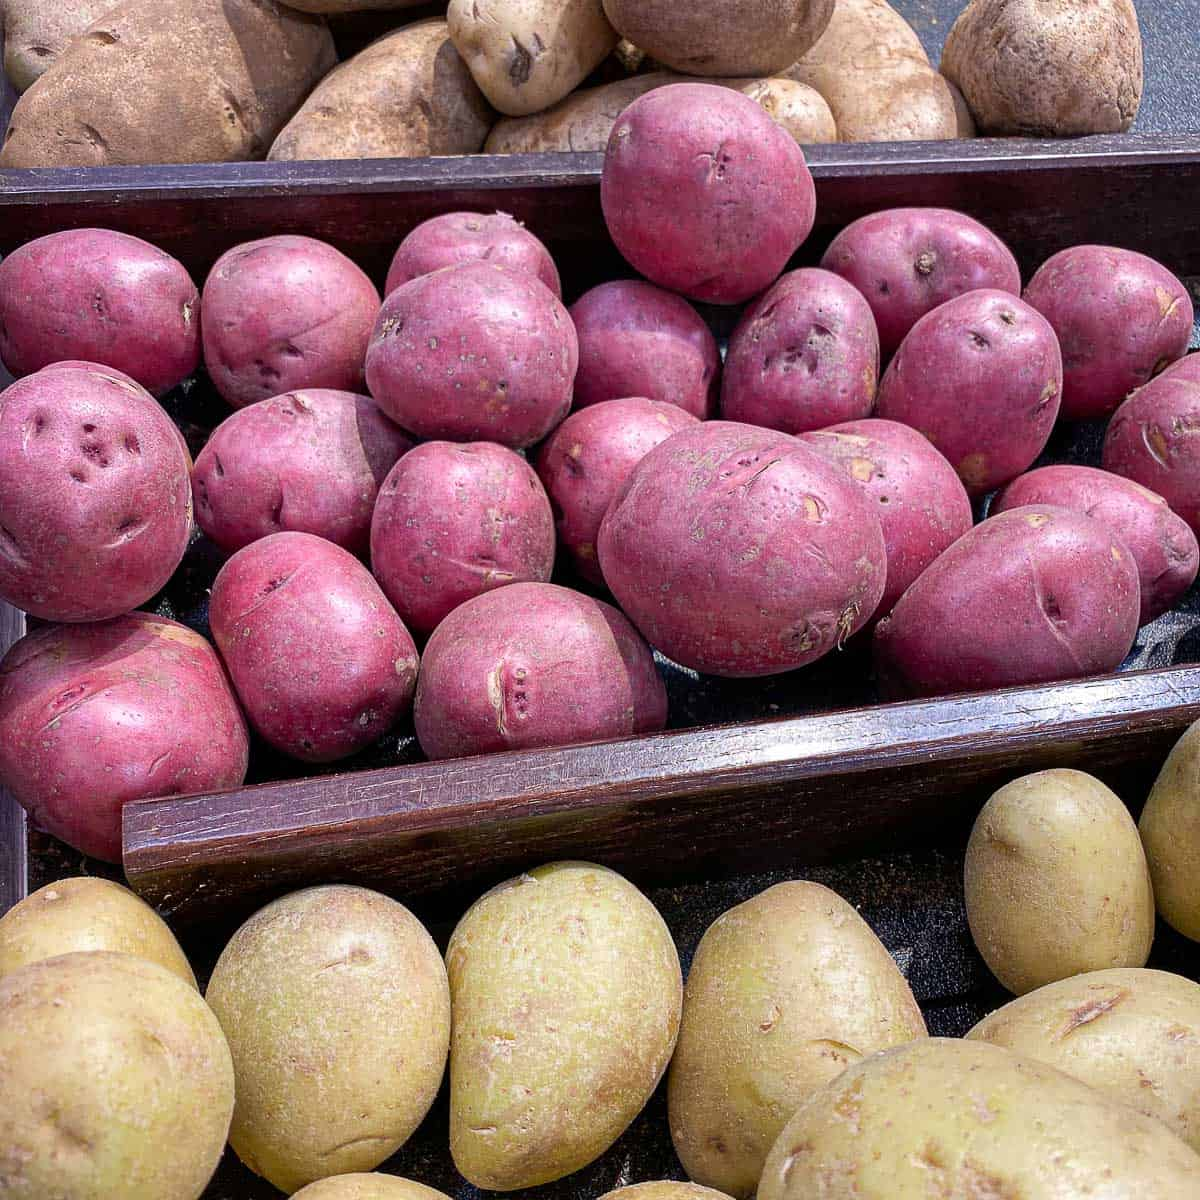 Image showing 3 types of potatoes that are good for roasting.